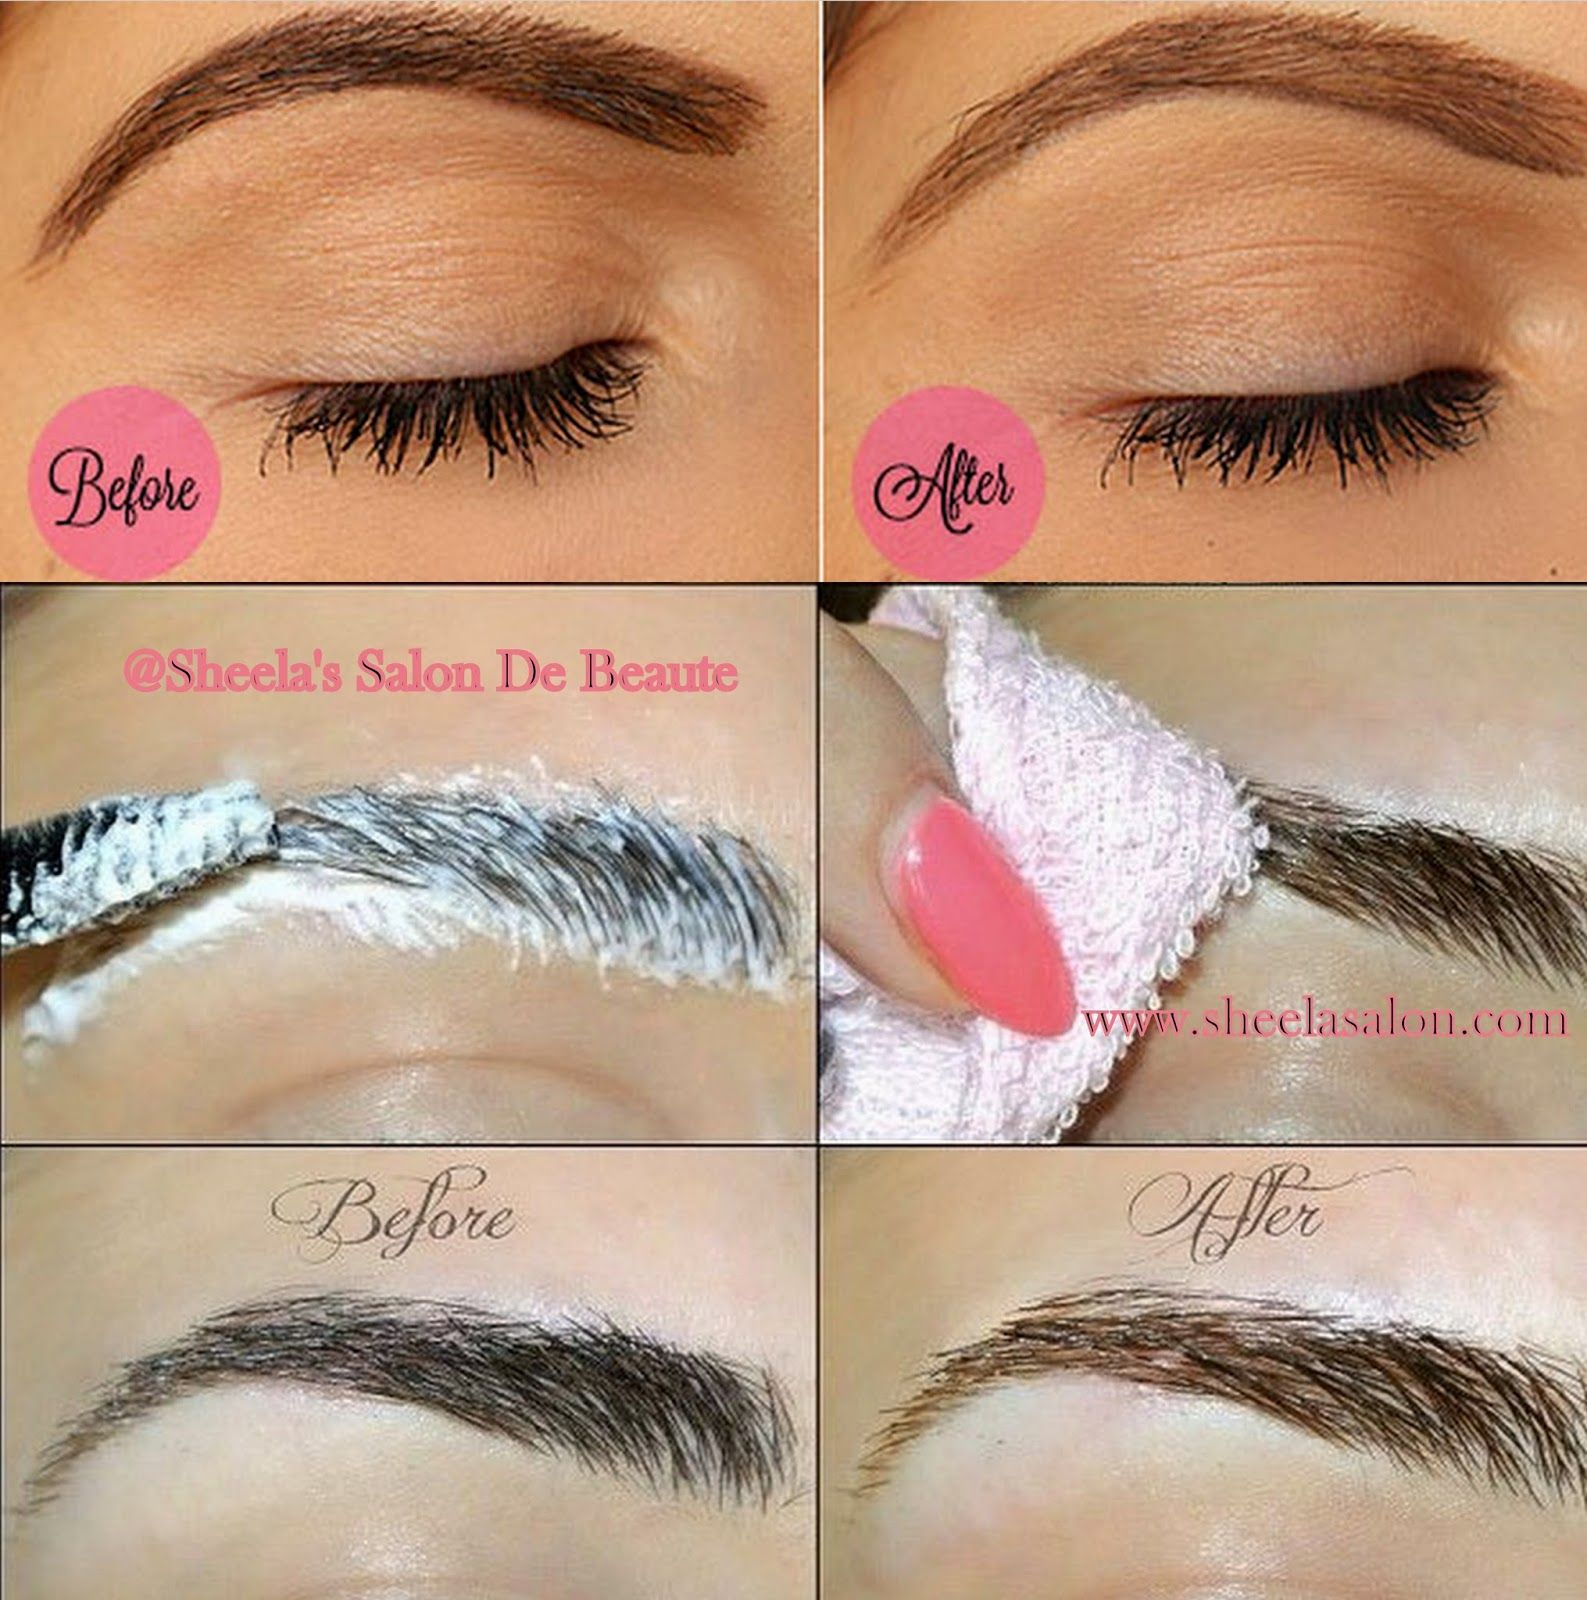 Gorgeous U Our Mission To Make You Gorgeous How To Lighten Your Eyebrows Lighten Eyebrows Dye Eyebrows How To Make Eyebrows